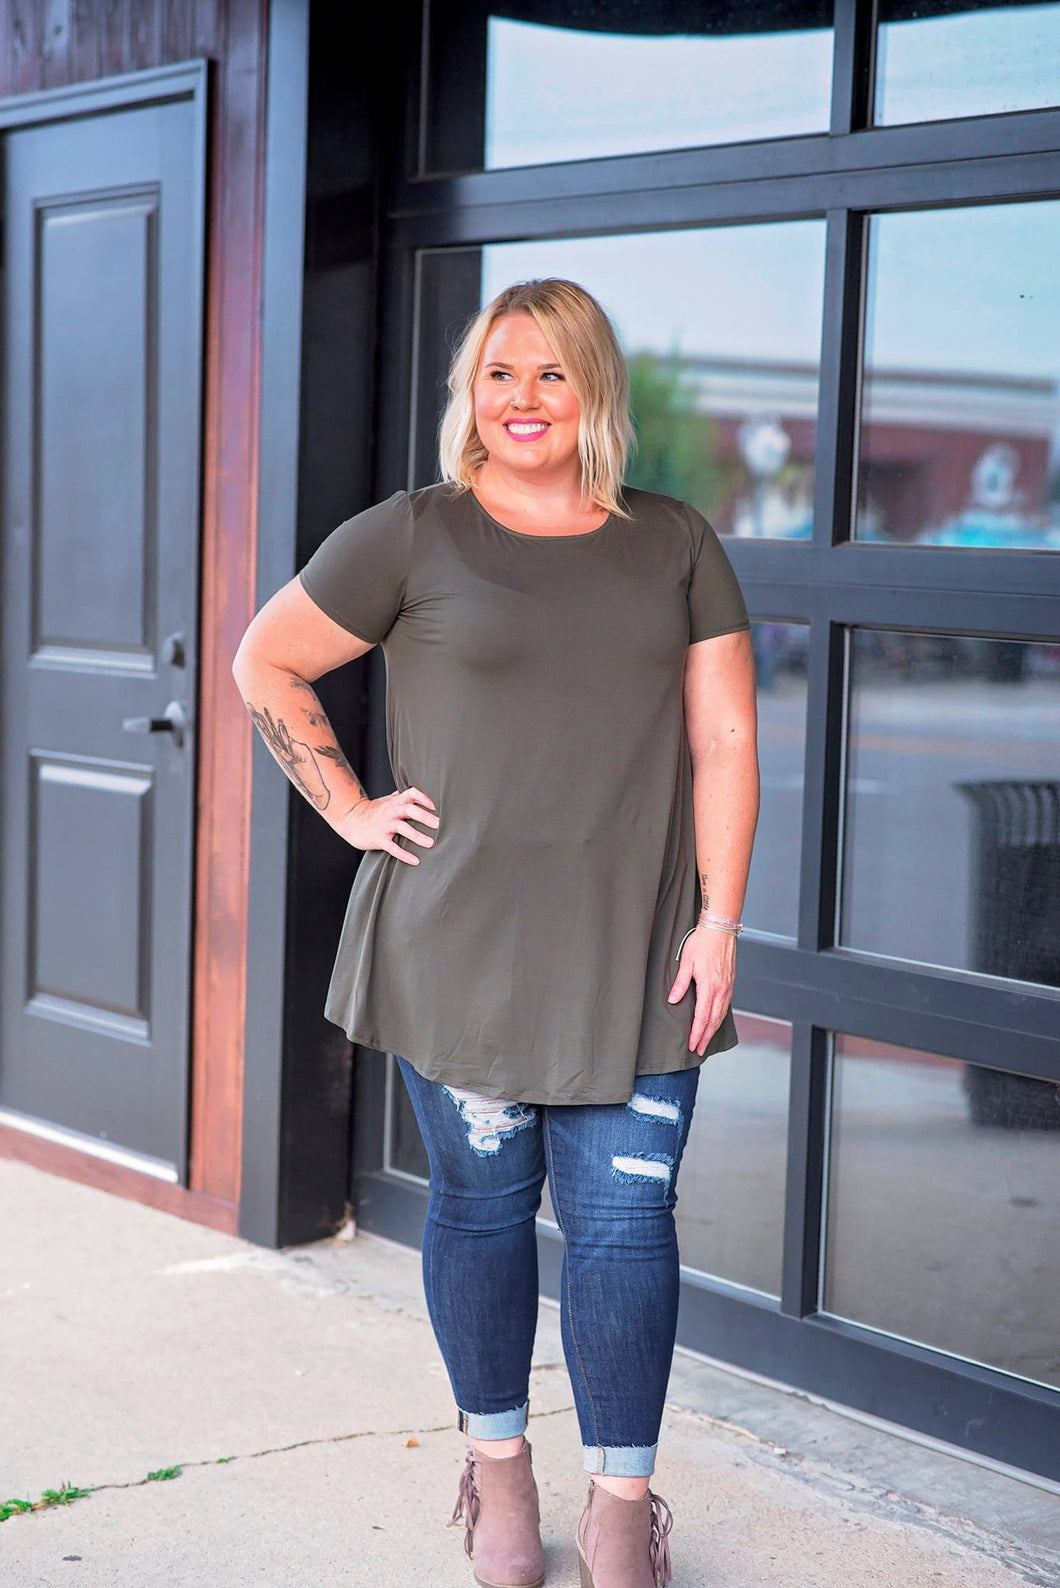 The Lucy Tunic